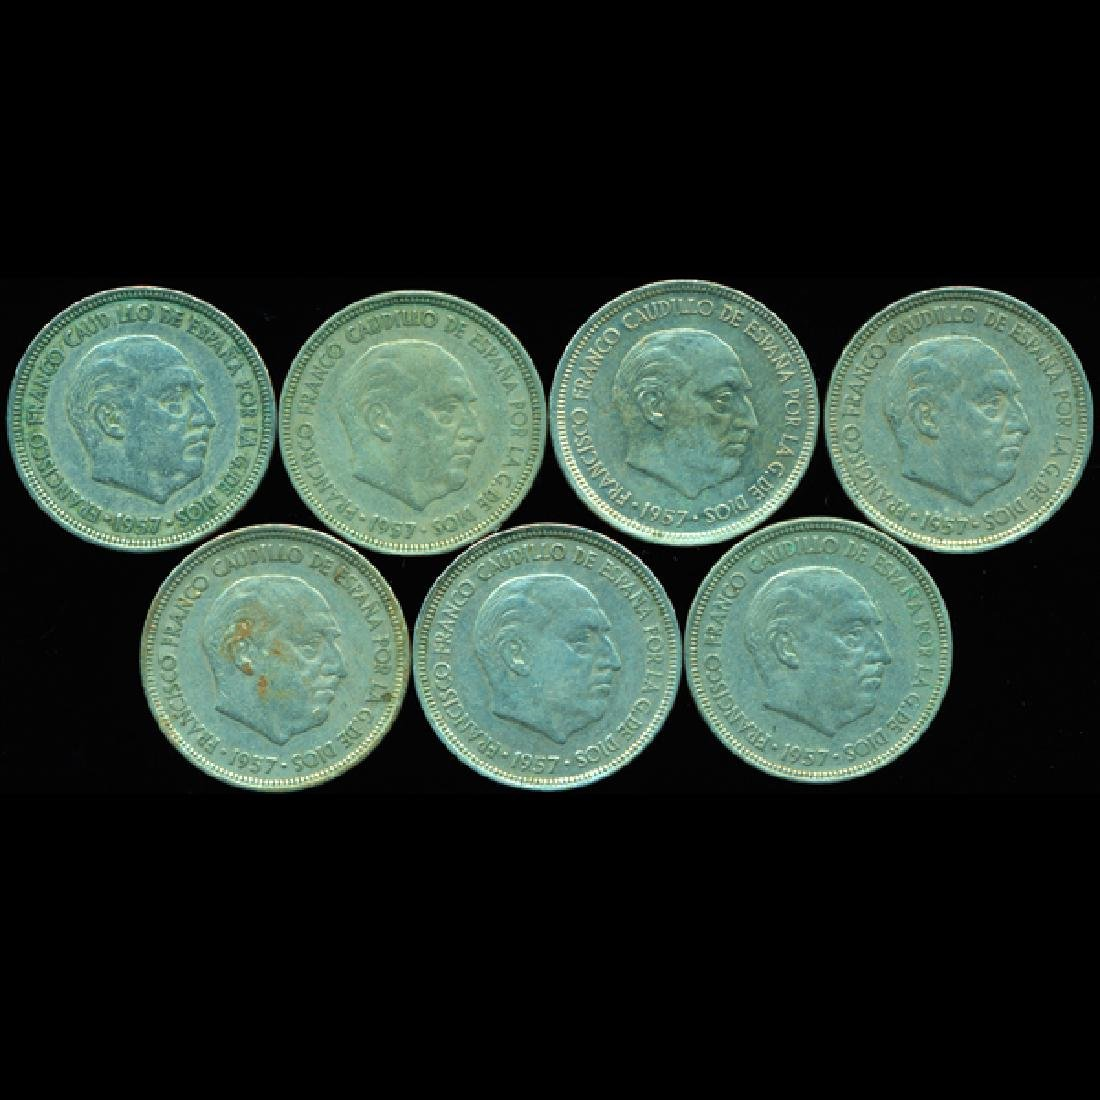 1958-71 Spain 5p AU/VF Scarce 7pcs